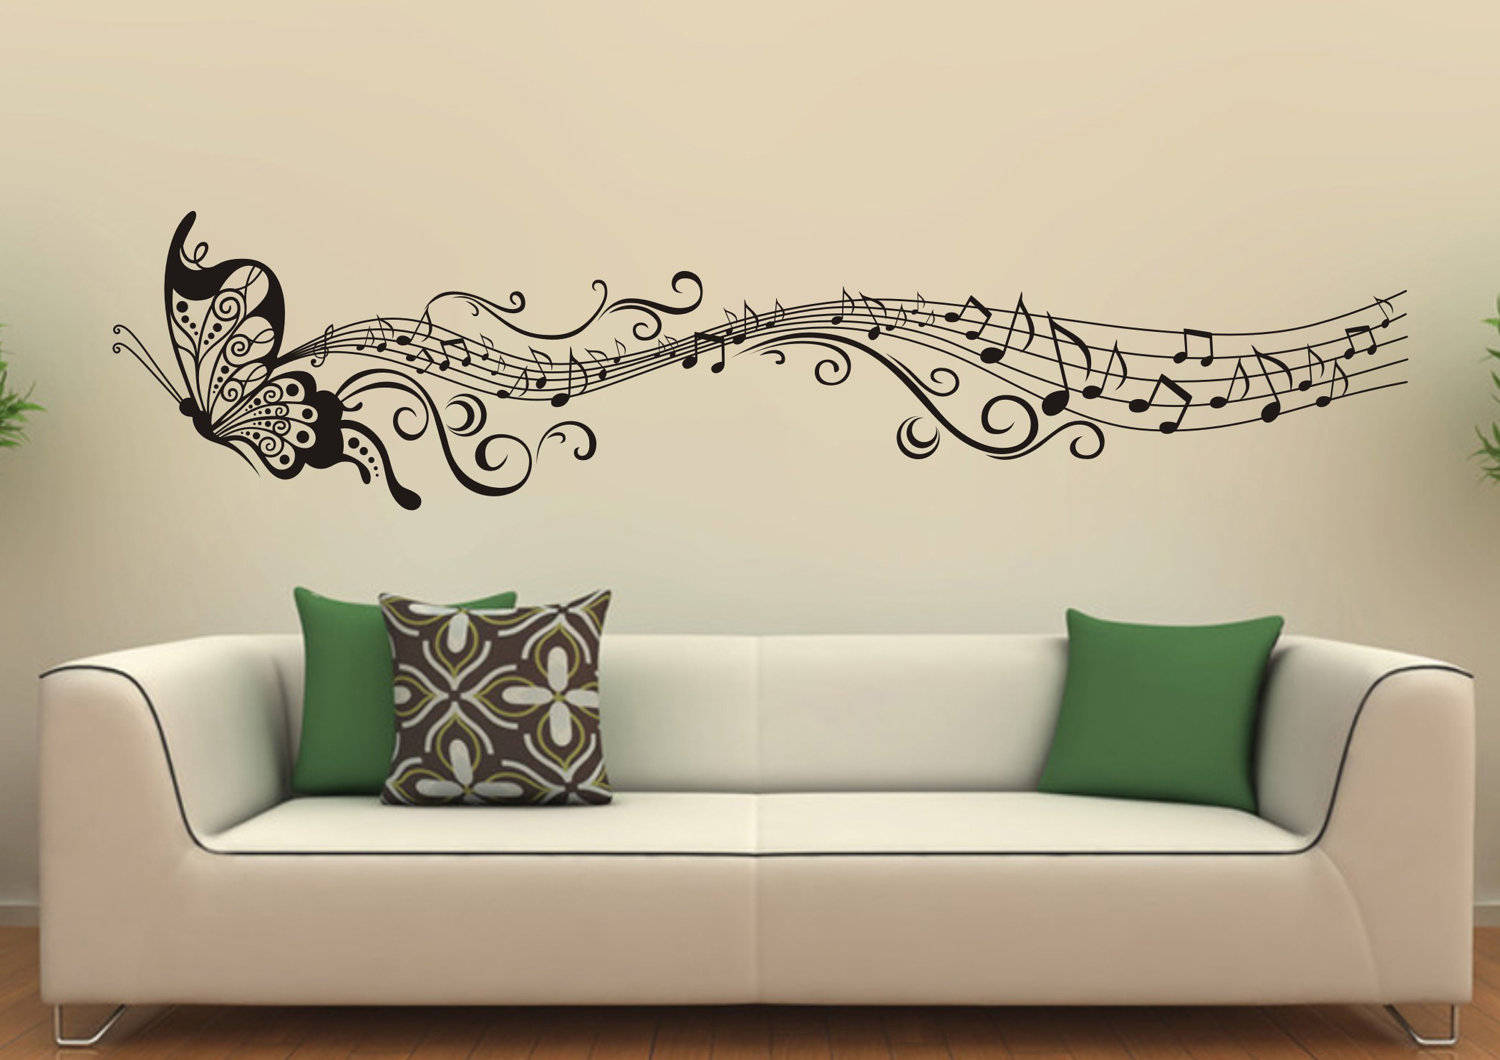 Wall Decor Options : Unique wall decor ideas godfather style